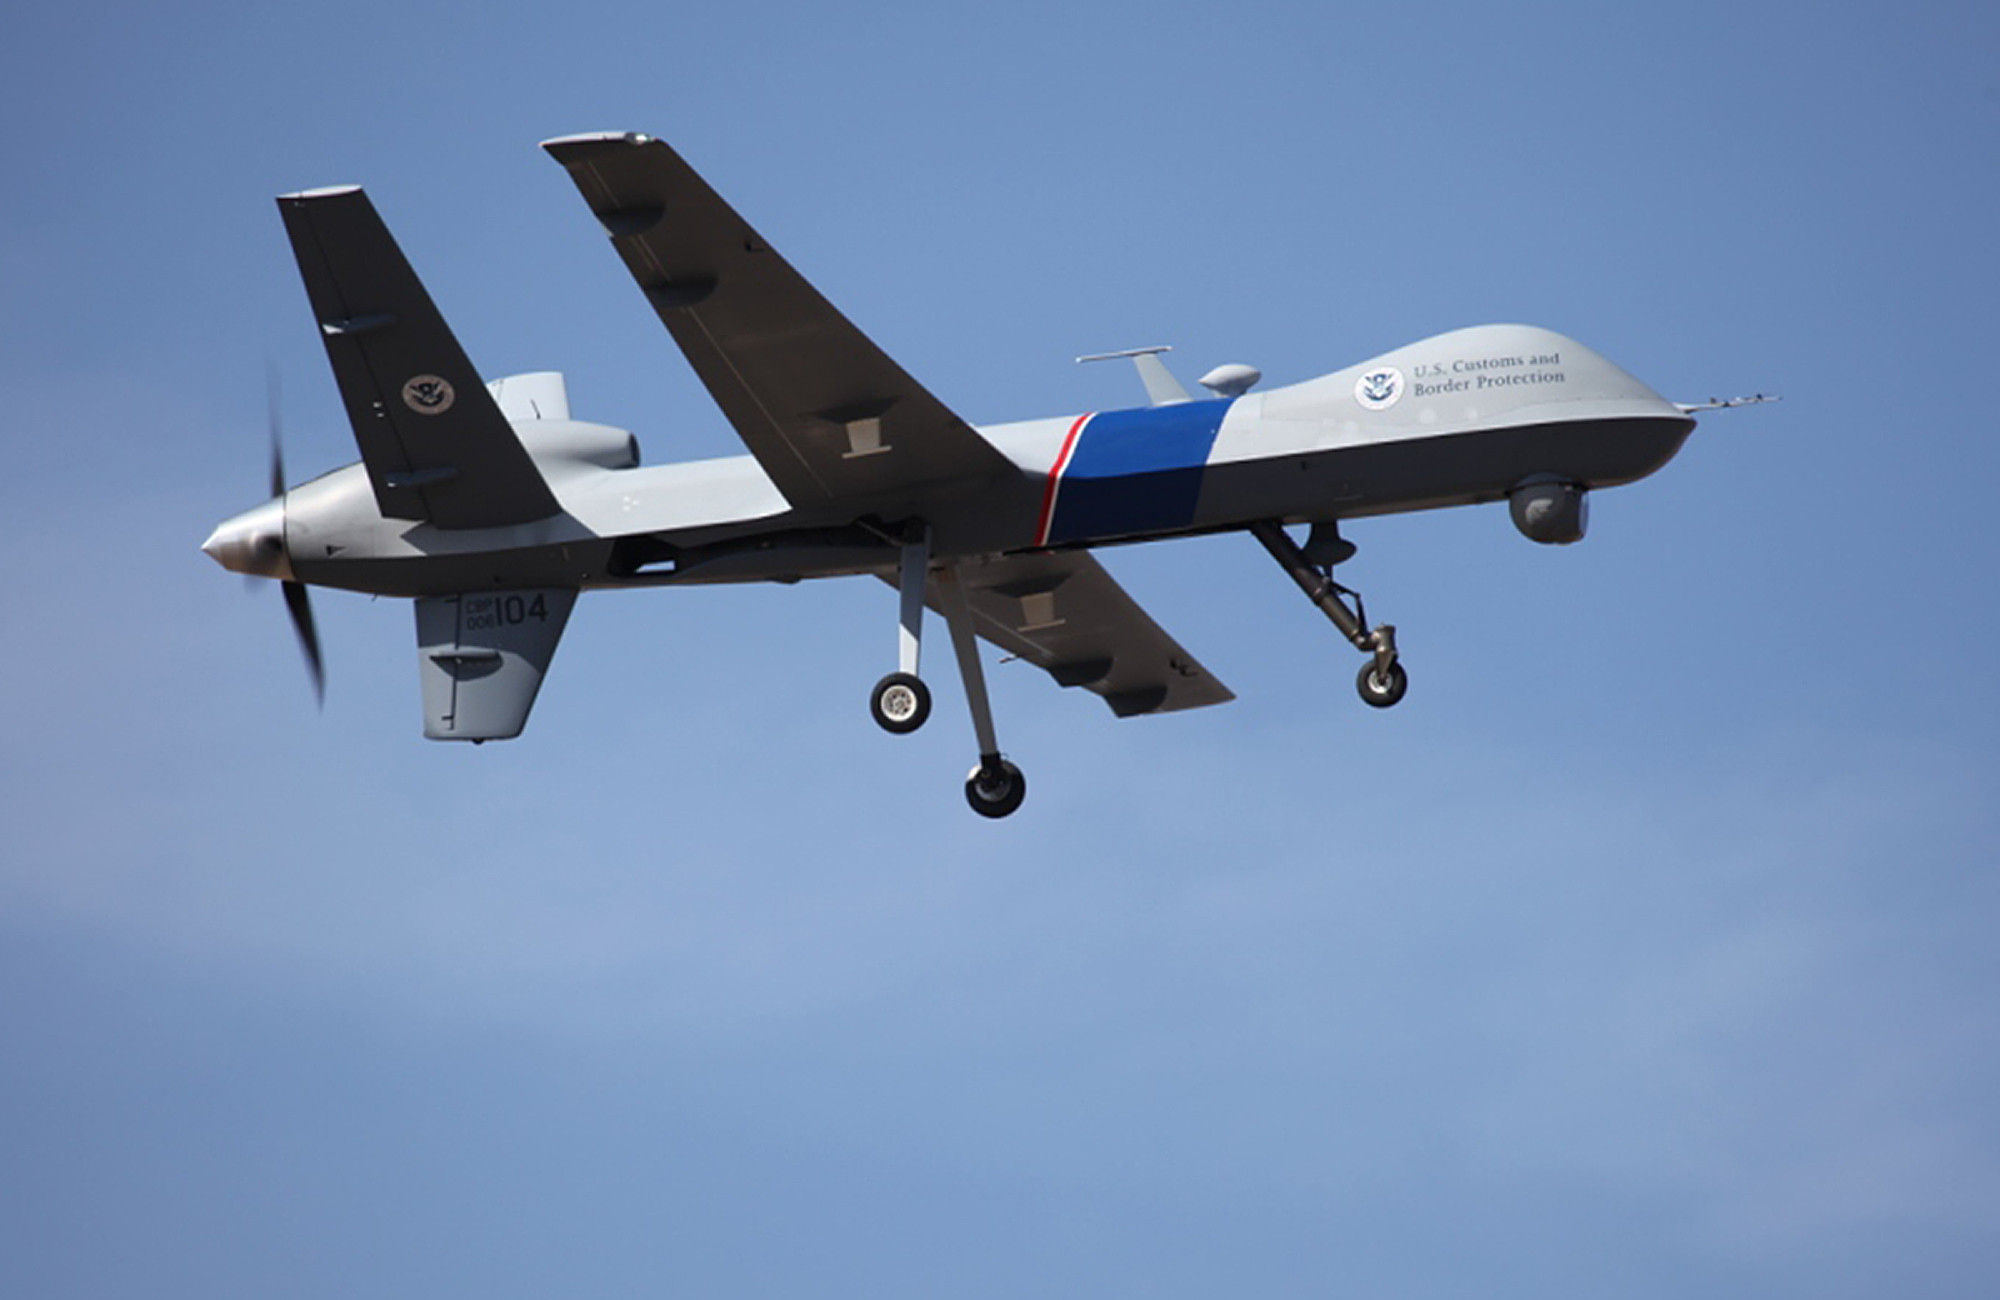 How are drones changing warfare, threatening security?